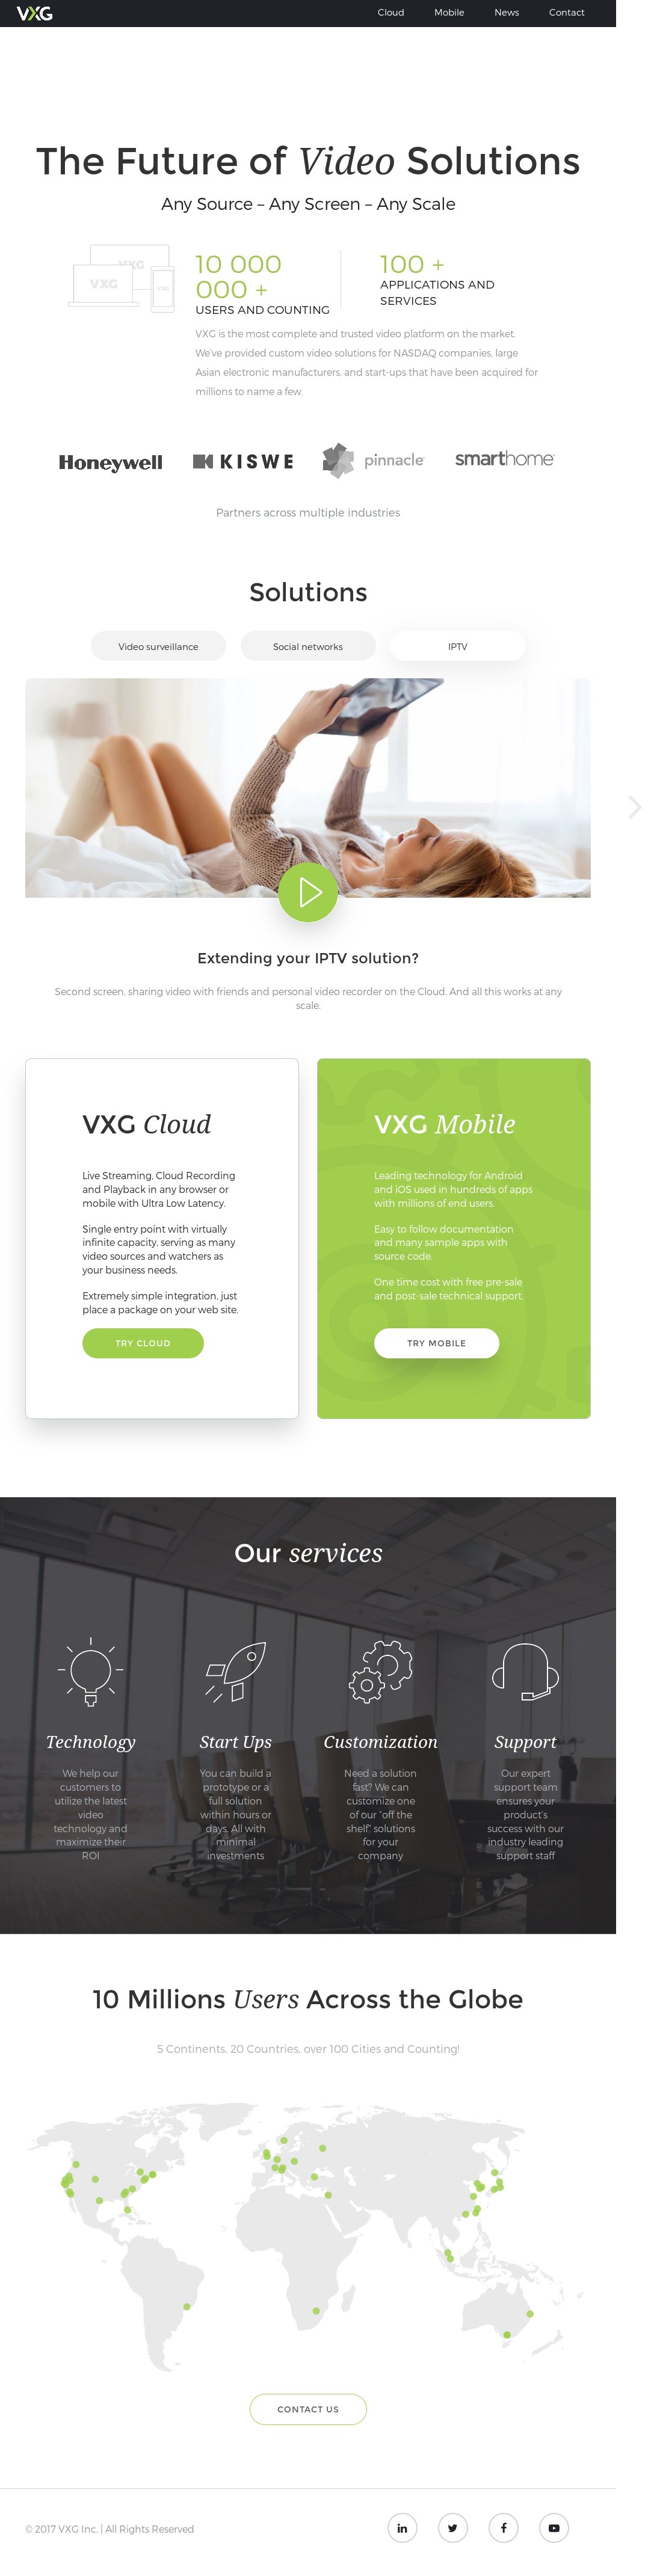 VXG Competitors, Revenue and Employees - Owler Company Profile